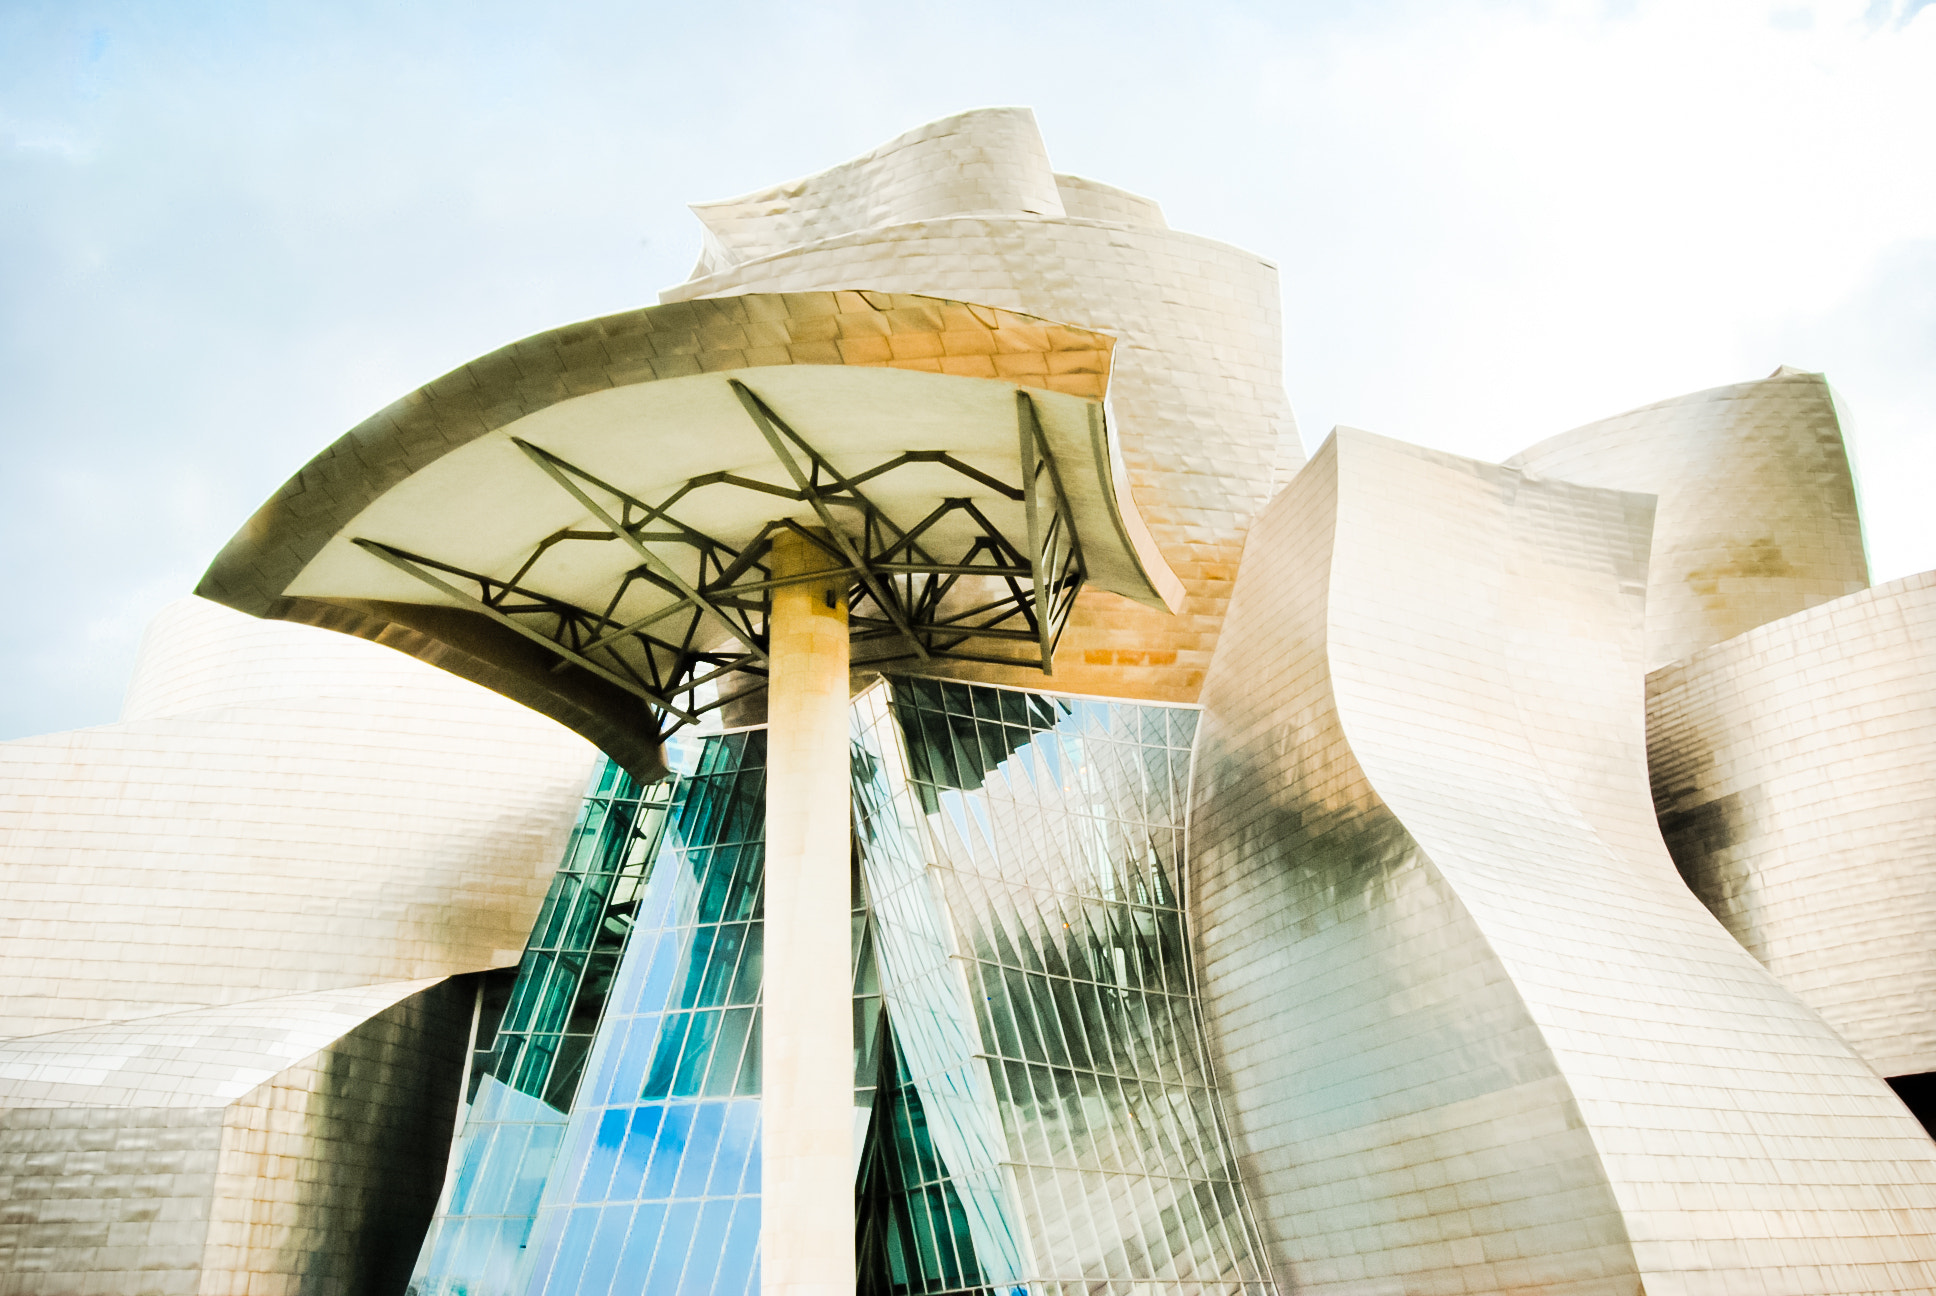 Photograph The Guggenheim Museum, Bilbao by Christine M on 500px